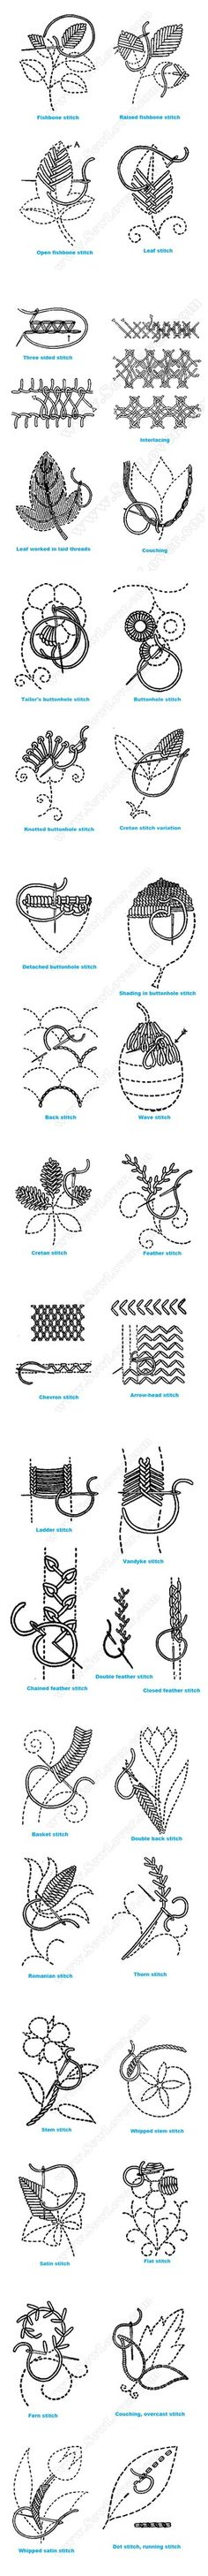 bordado - Types of Stitches in Embroidery - many types of stitches clearly illustrated. Embroidery Needles, Hand Embroidery Stitches, Silk Ribbon Embroidery, Crewel Embroidery, Embroidery Techniques, Cross Stitch Embroidery, Knitting Stitches, Embroidery Designs, Creative Embroidery